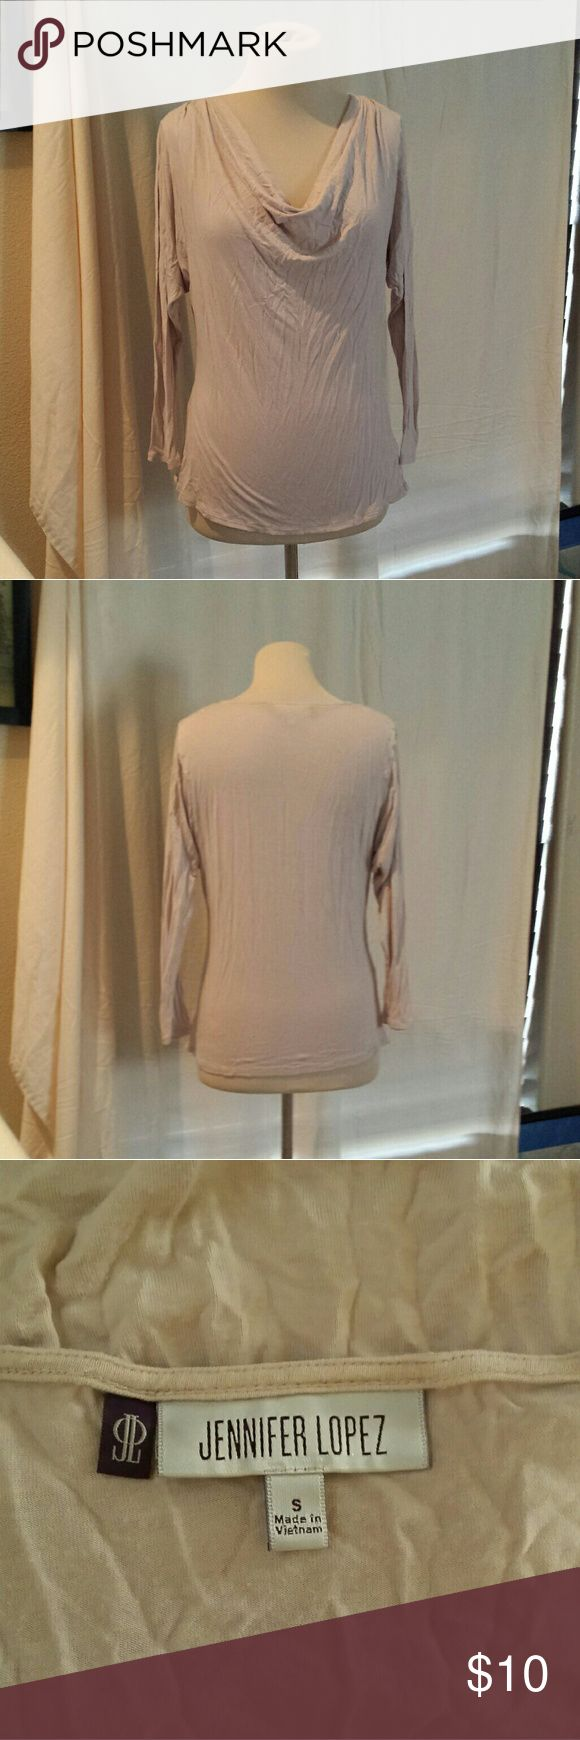 Jennifer Lopez Blush Cowl Neck 3/4 Sleeve Top Modeled on a medium mannequin, so on a small it would be looser.   Length: 25in Pit to pit laying flat: 21in stretches to 30in Waist laying flat: 17in stretches to 26in  Sleeve length is 20in  #nude #blush #cream #tan #ivory #beige #peach #slouchy #cowlneck #Cowl #threequartersleeve #silky #fancy #soft #spring #summer #fall #winter #anytime #goeswitheverything #neutral #work #workattire #office #professional #neutral Jennifer Lopez Tops Tees…